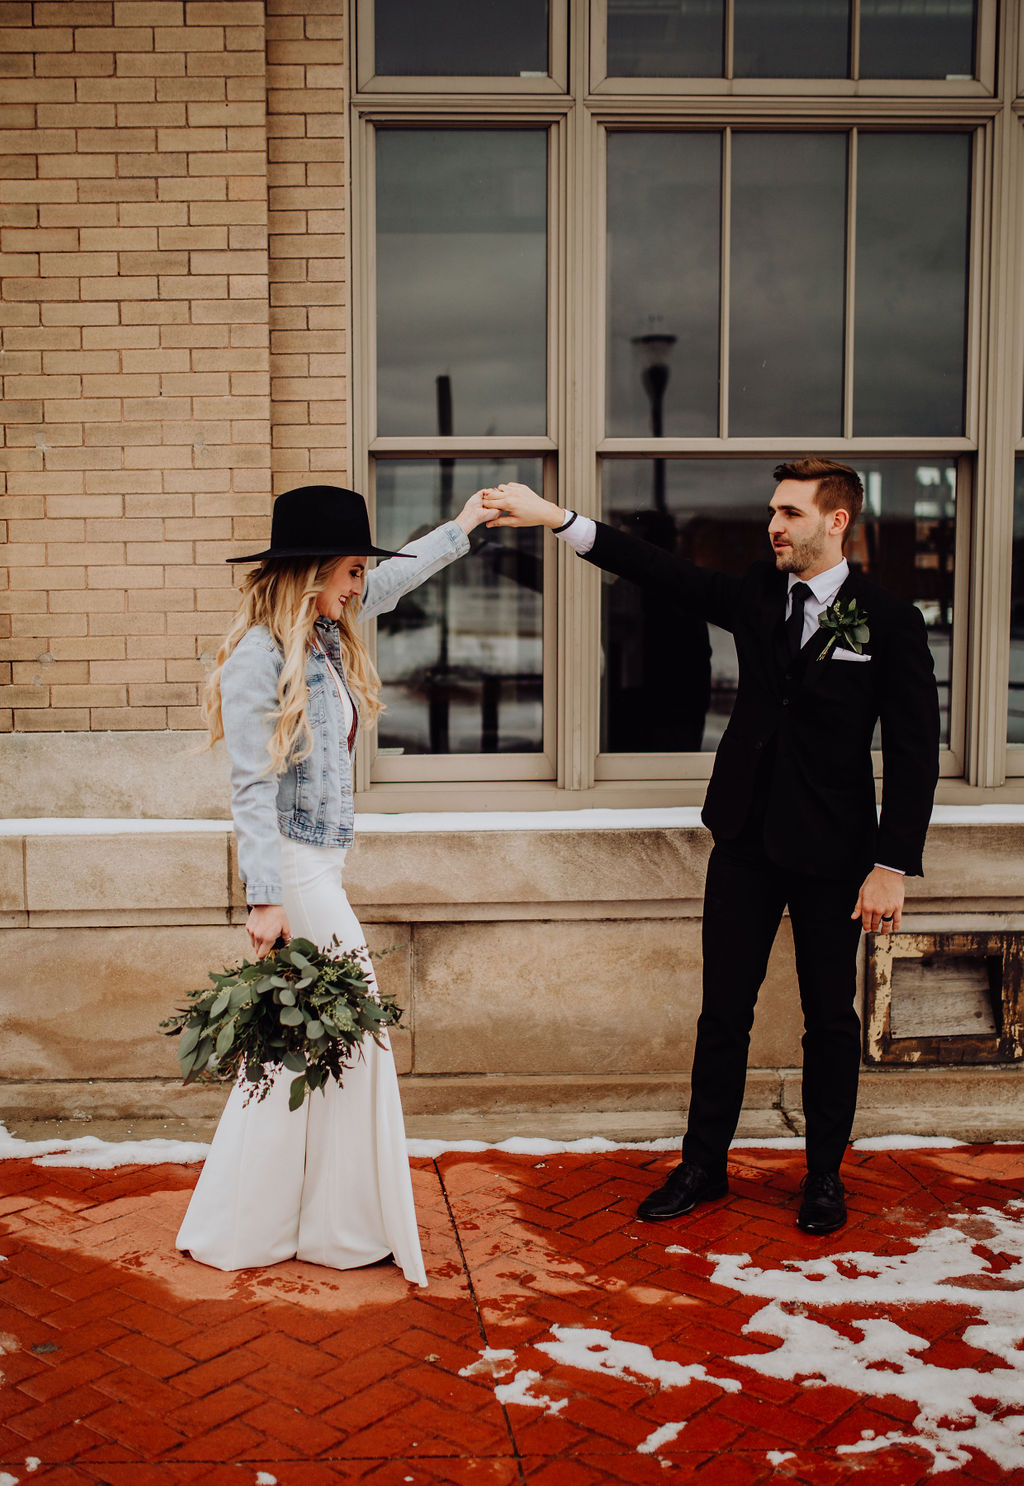 Our Intimate Courthouse Wedding | Boho, Eclectic, Vintage, Courthouse Wedding | Miranda Schroeder Blog | www.mirandaschroeder.com